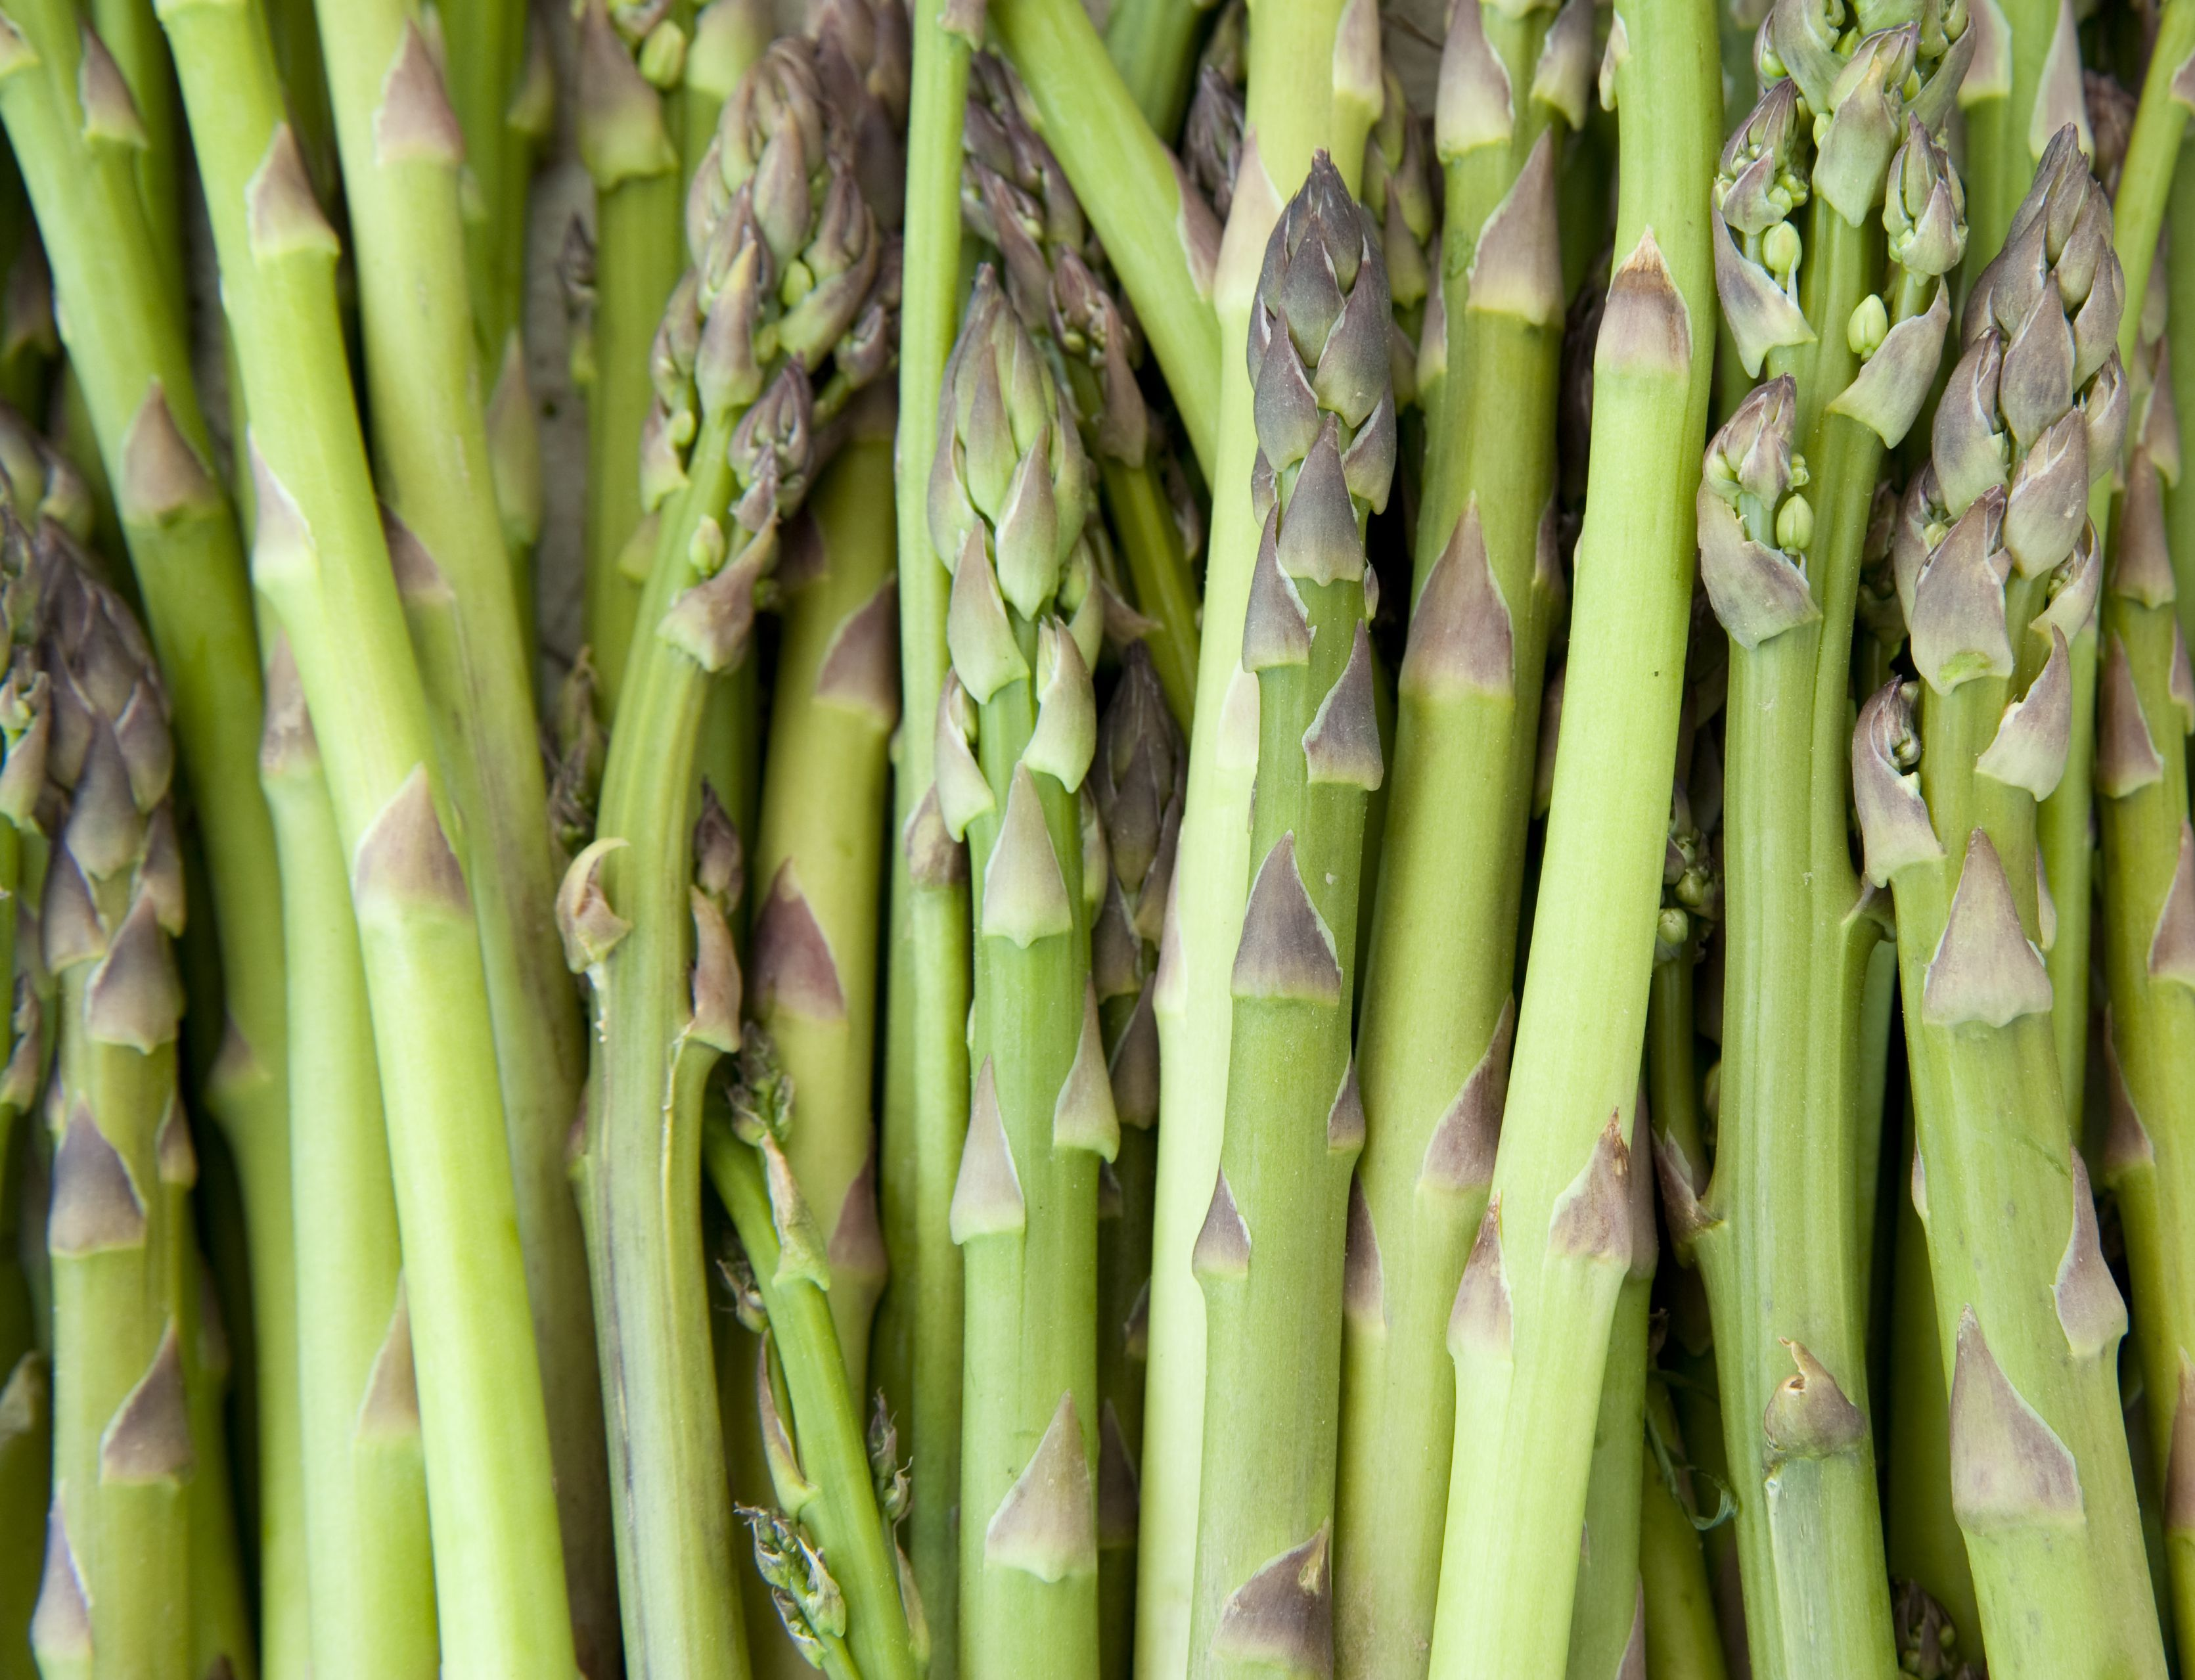 How to Grow Asparagus - Tips for Planting Asparagus